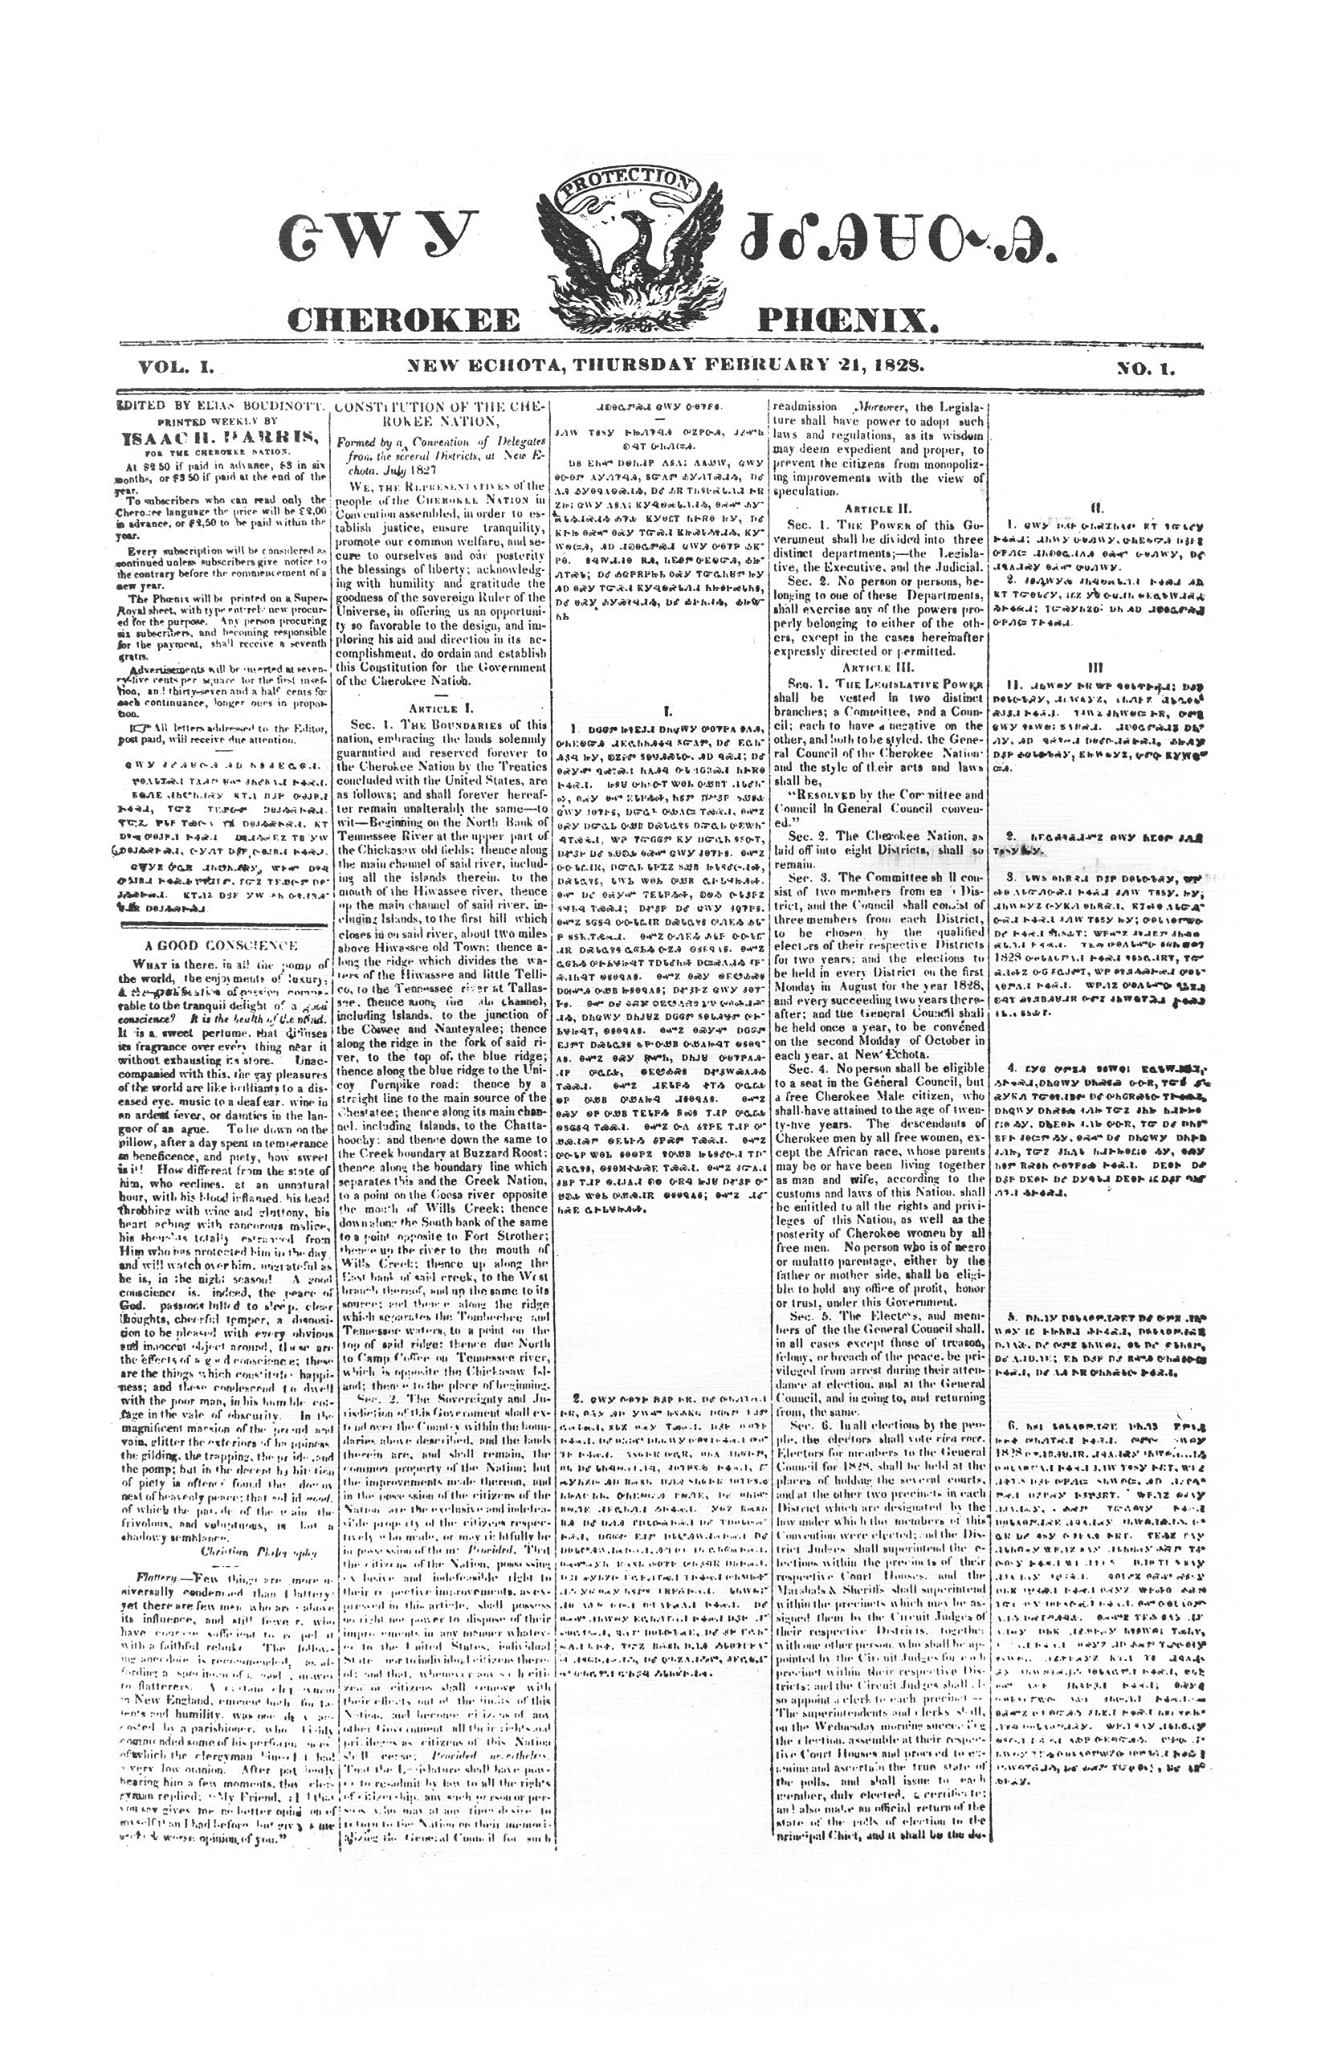 Replica of the Feb. 21, 1828 Issue of the Cherokee Phoenix